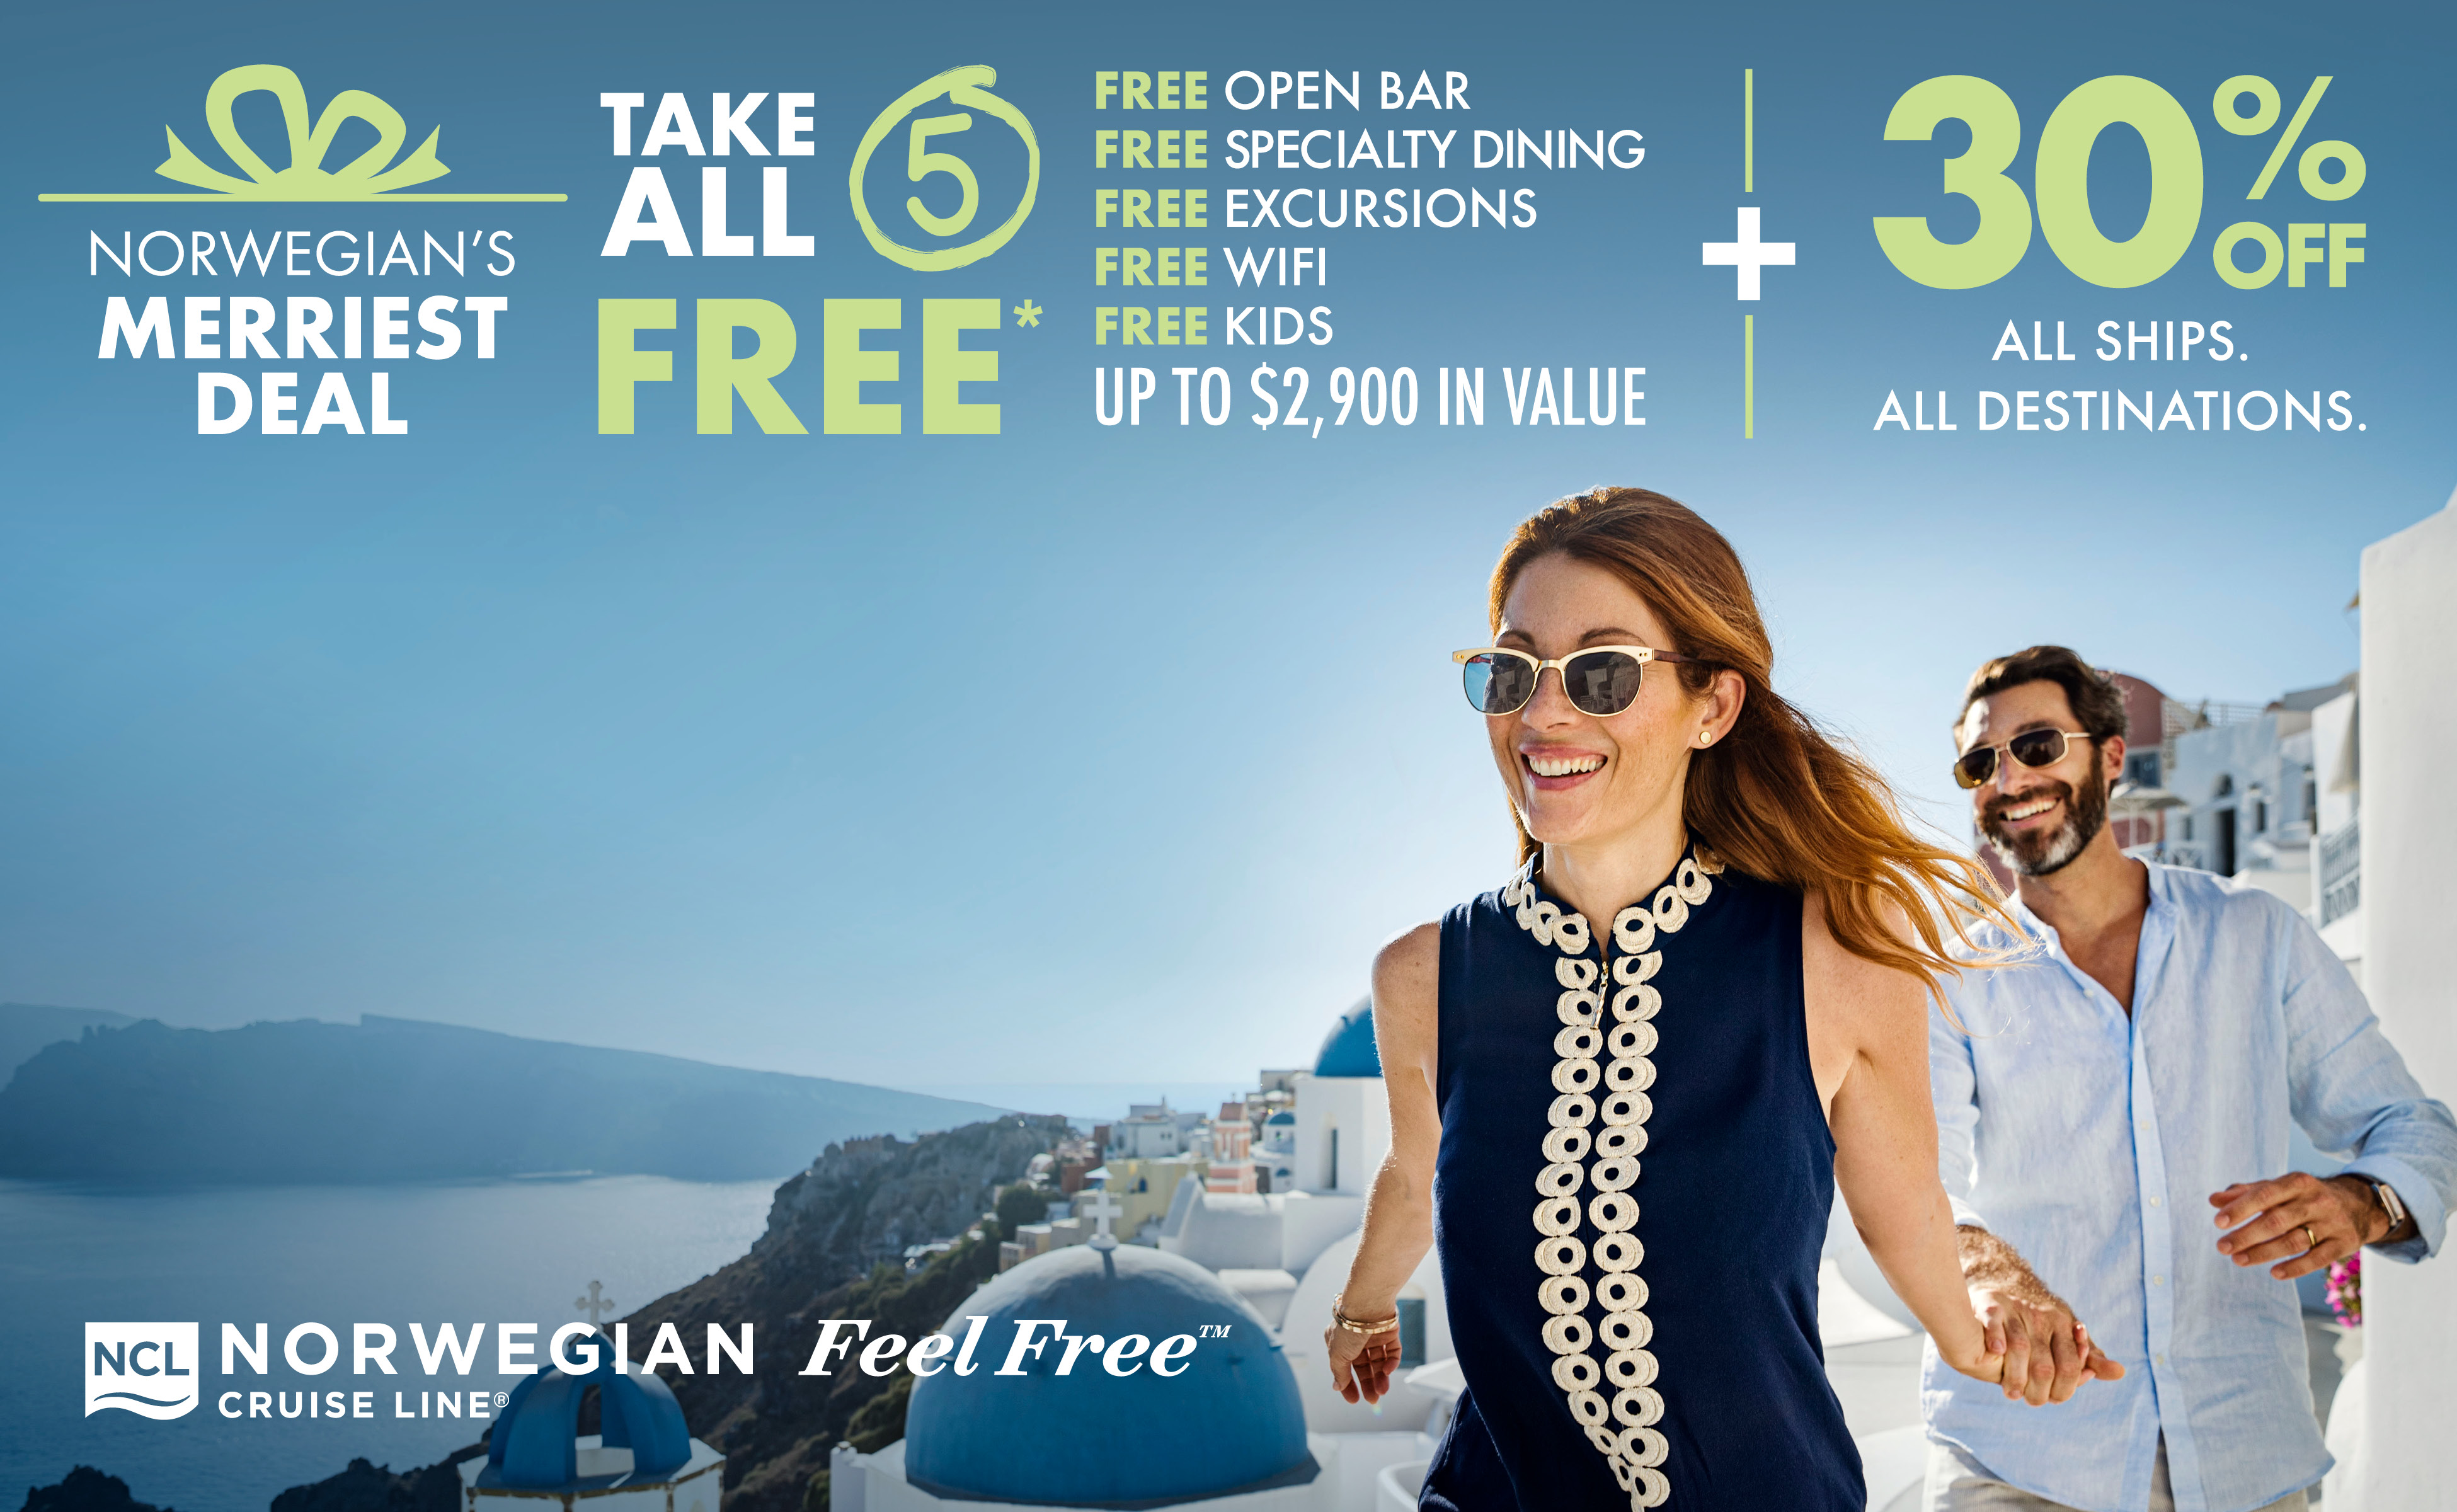 Norwegian - Receive 30% off cruise fare, PLUS:  Take All 5 FREE Offers